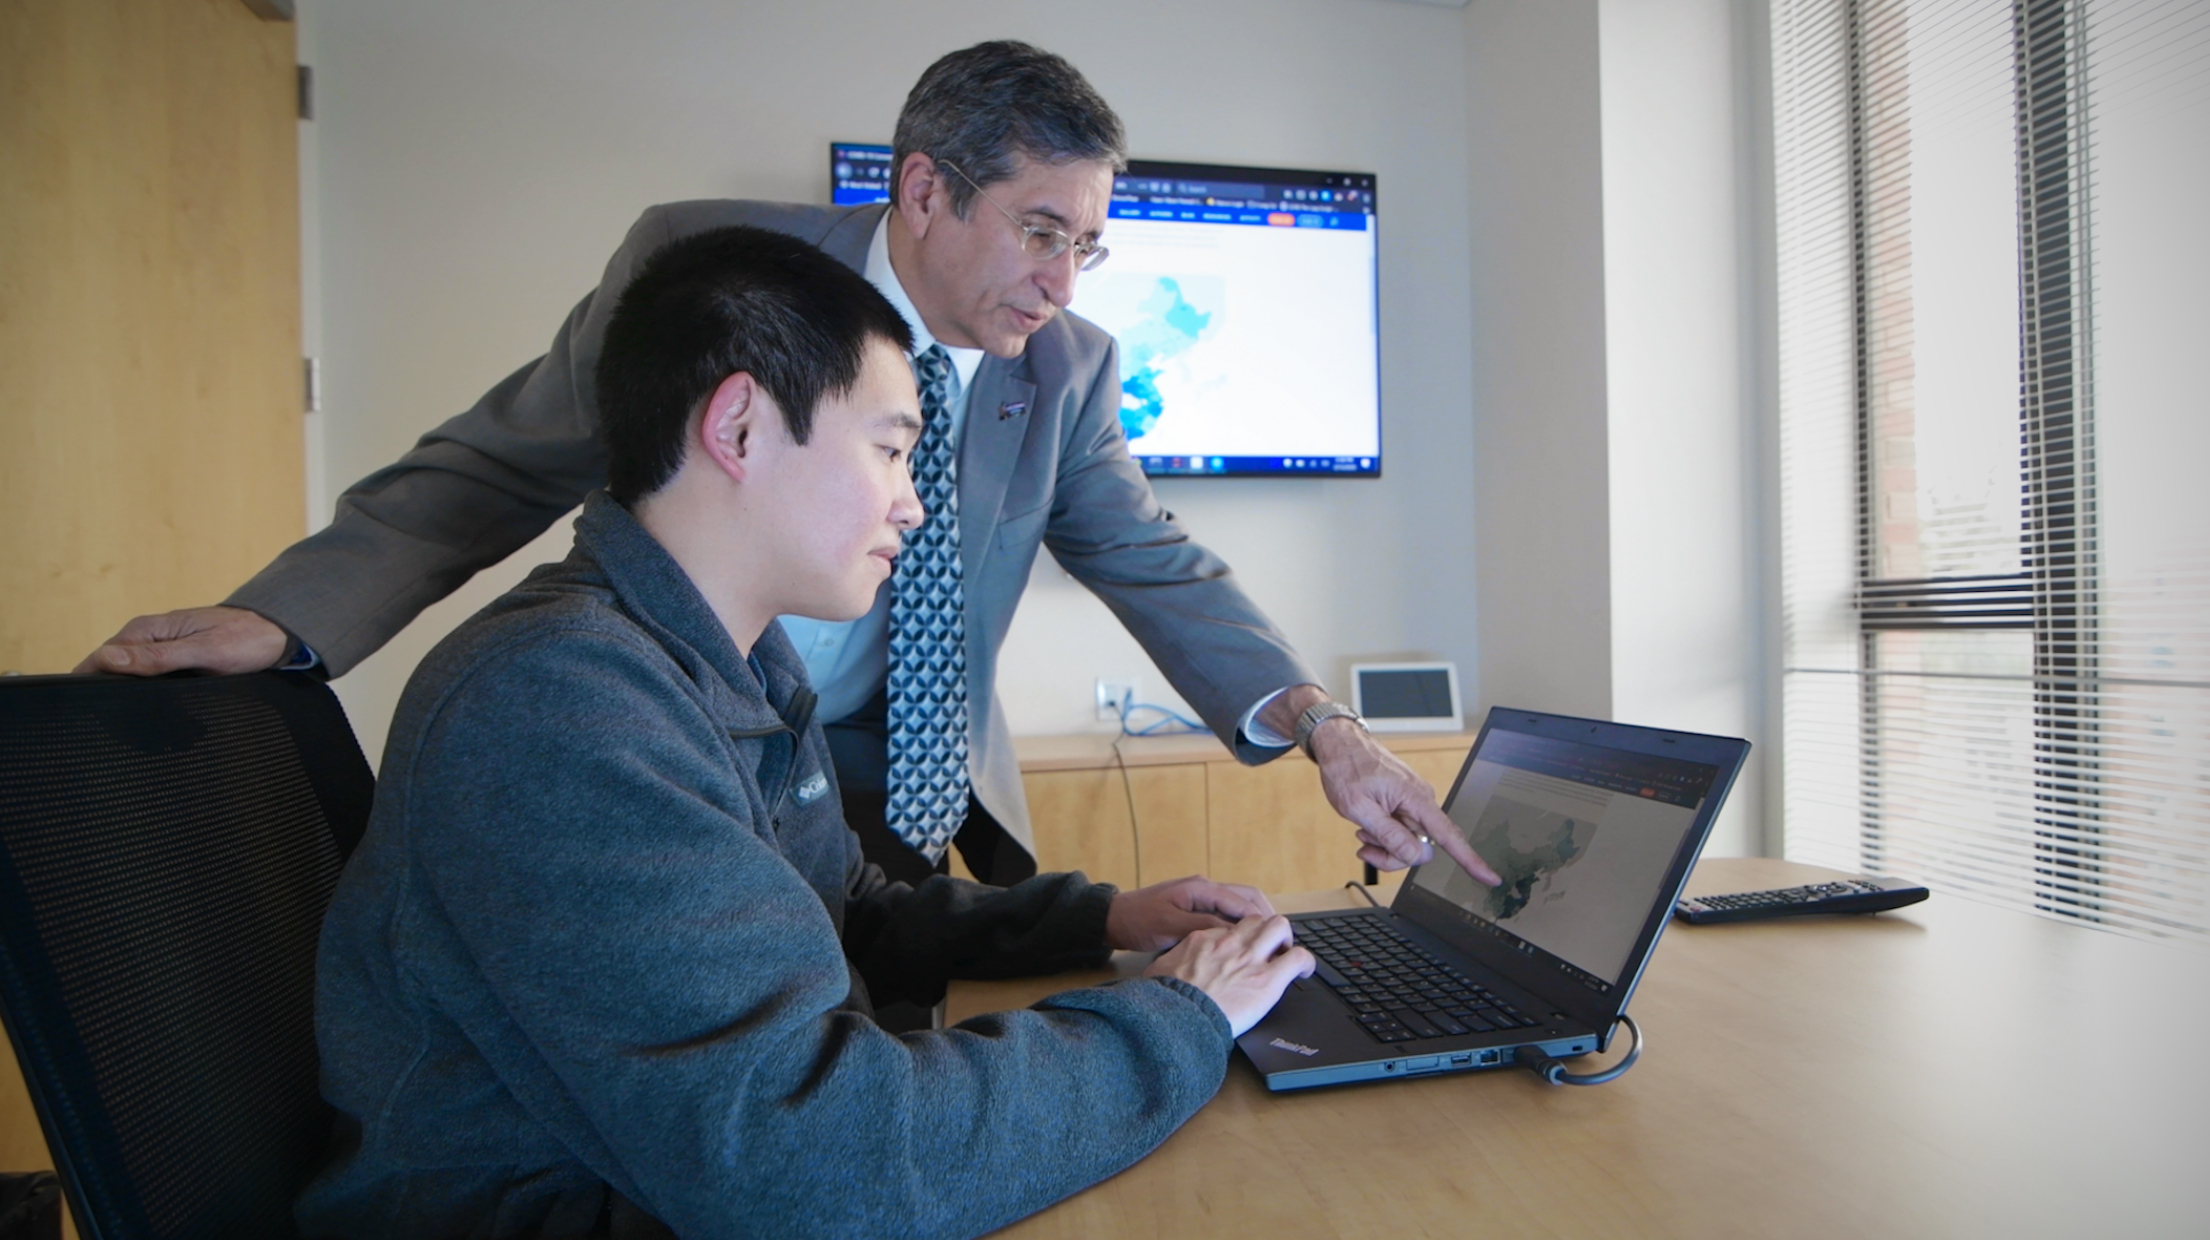 Yuansun (Sonny) Jiang and Prof. Oskar Harmon examine the site Jiang built to track the spread of coronavirus in Connecticut. (UConn Photo)